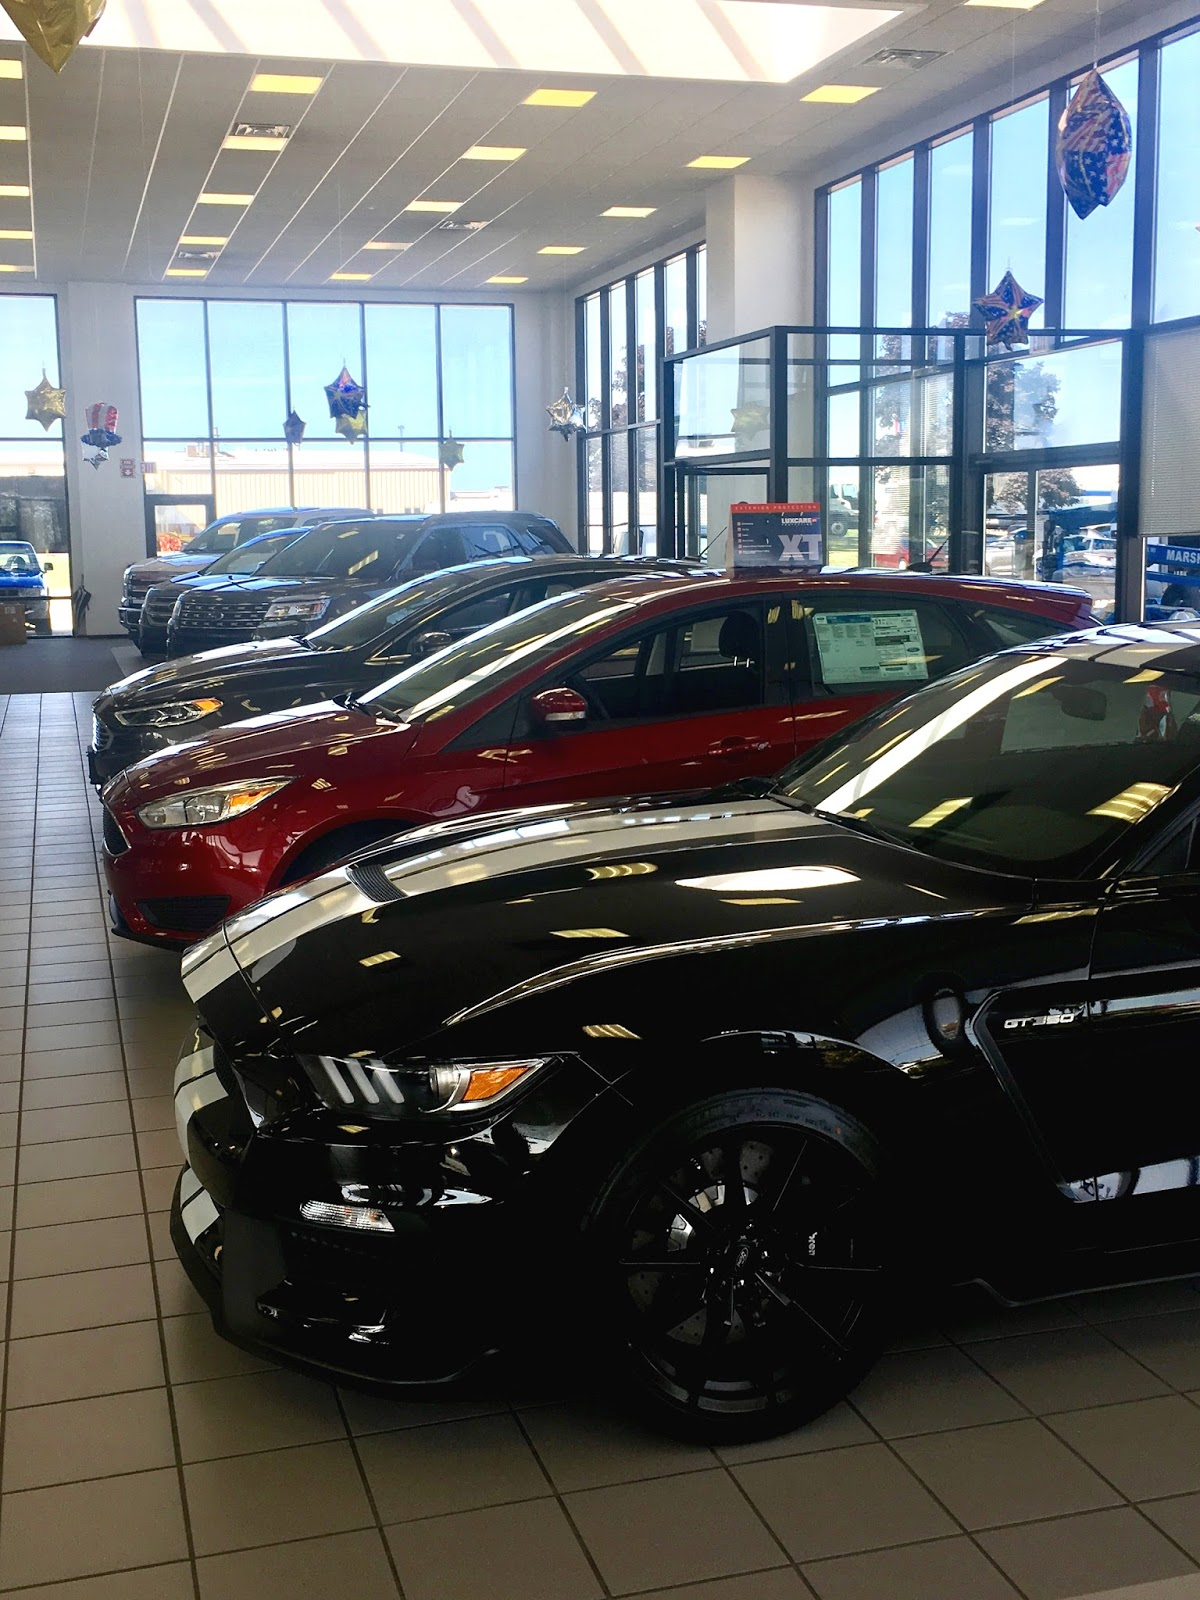 cars million lincoln administration steering today with complaints loose wheels safety logged highway usa that ford nhtsa a dealer recalls alleging were more says milwaukee from report national after than traffic mkz the came